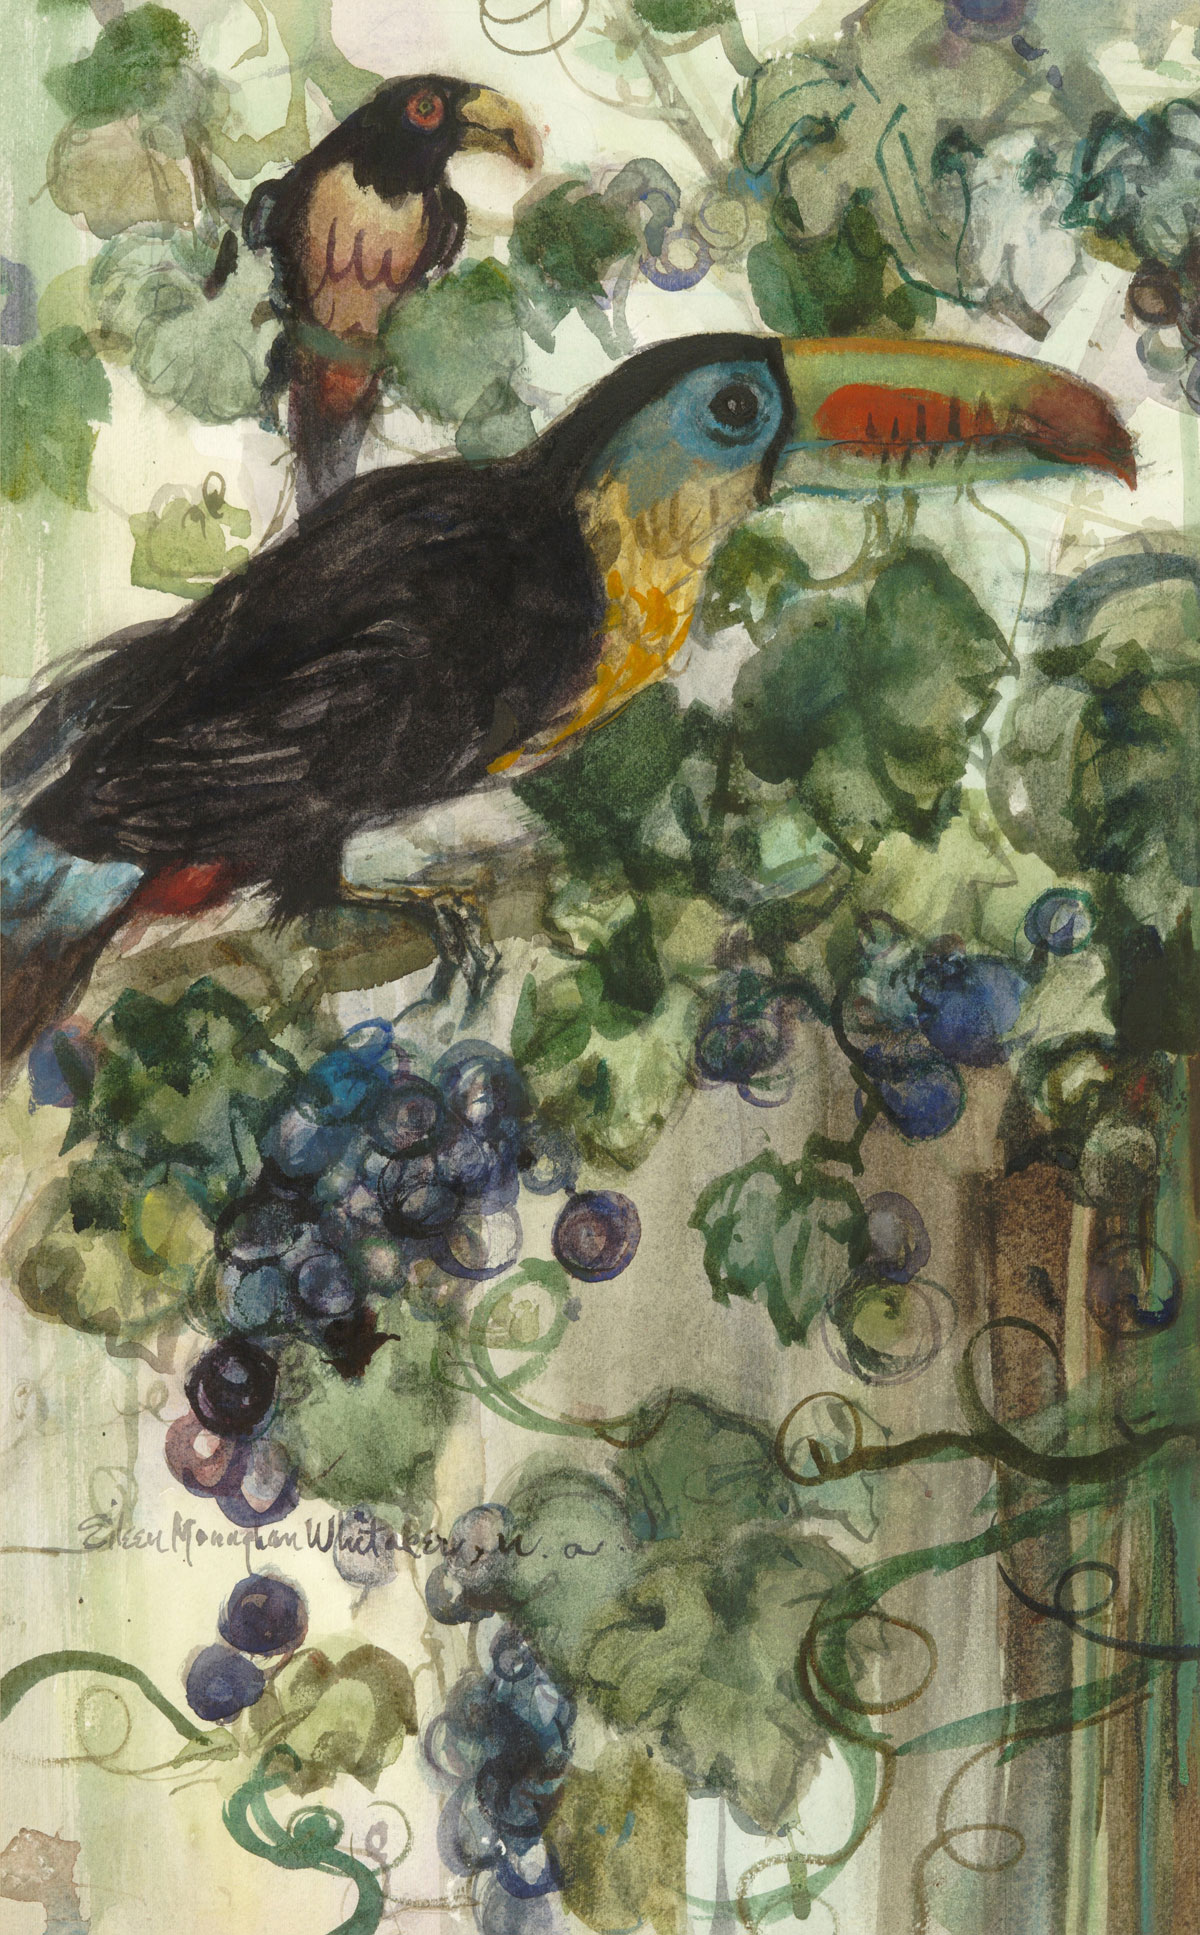 """Toucan in the Grapevines"" 1982 © Eileen Monaghan Whitaker  14x22 inches Watercolor"